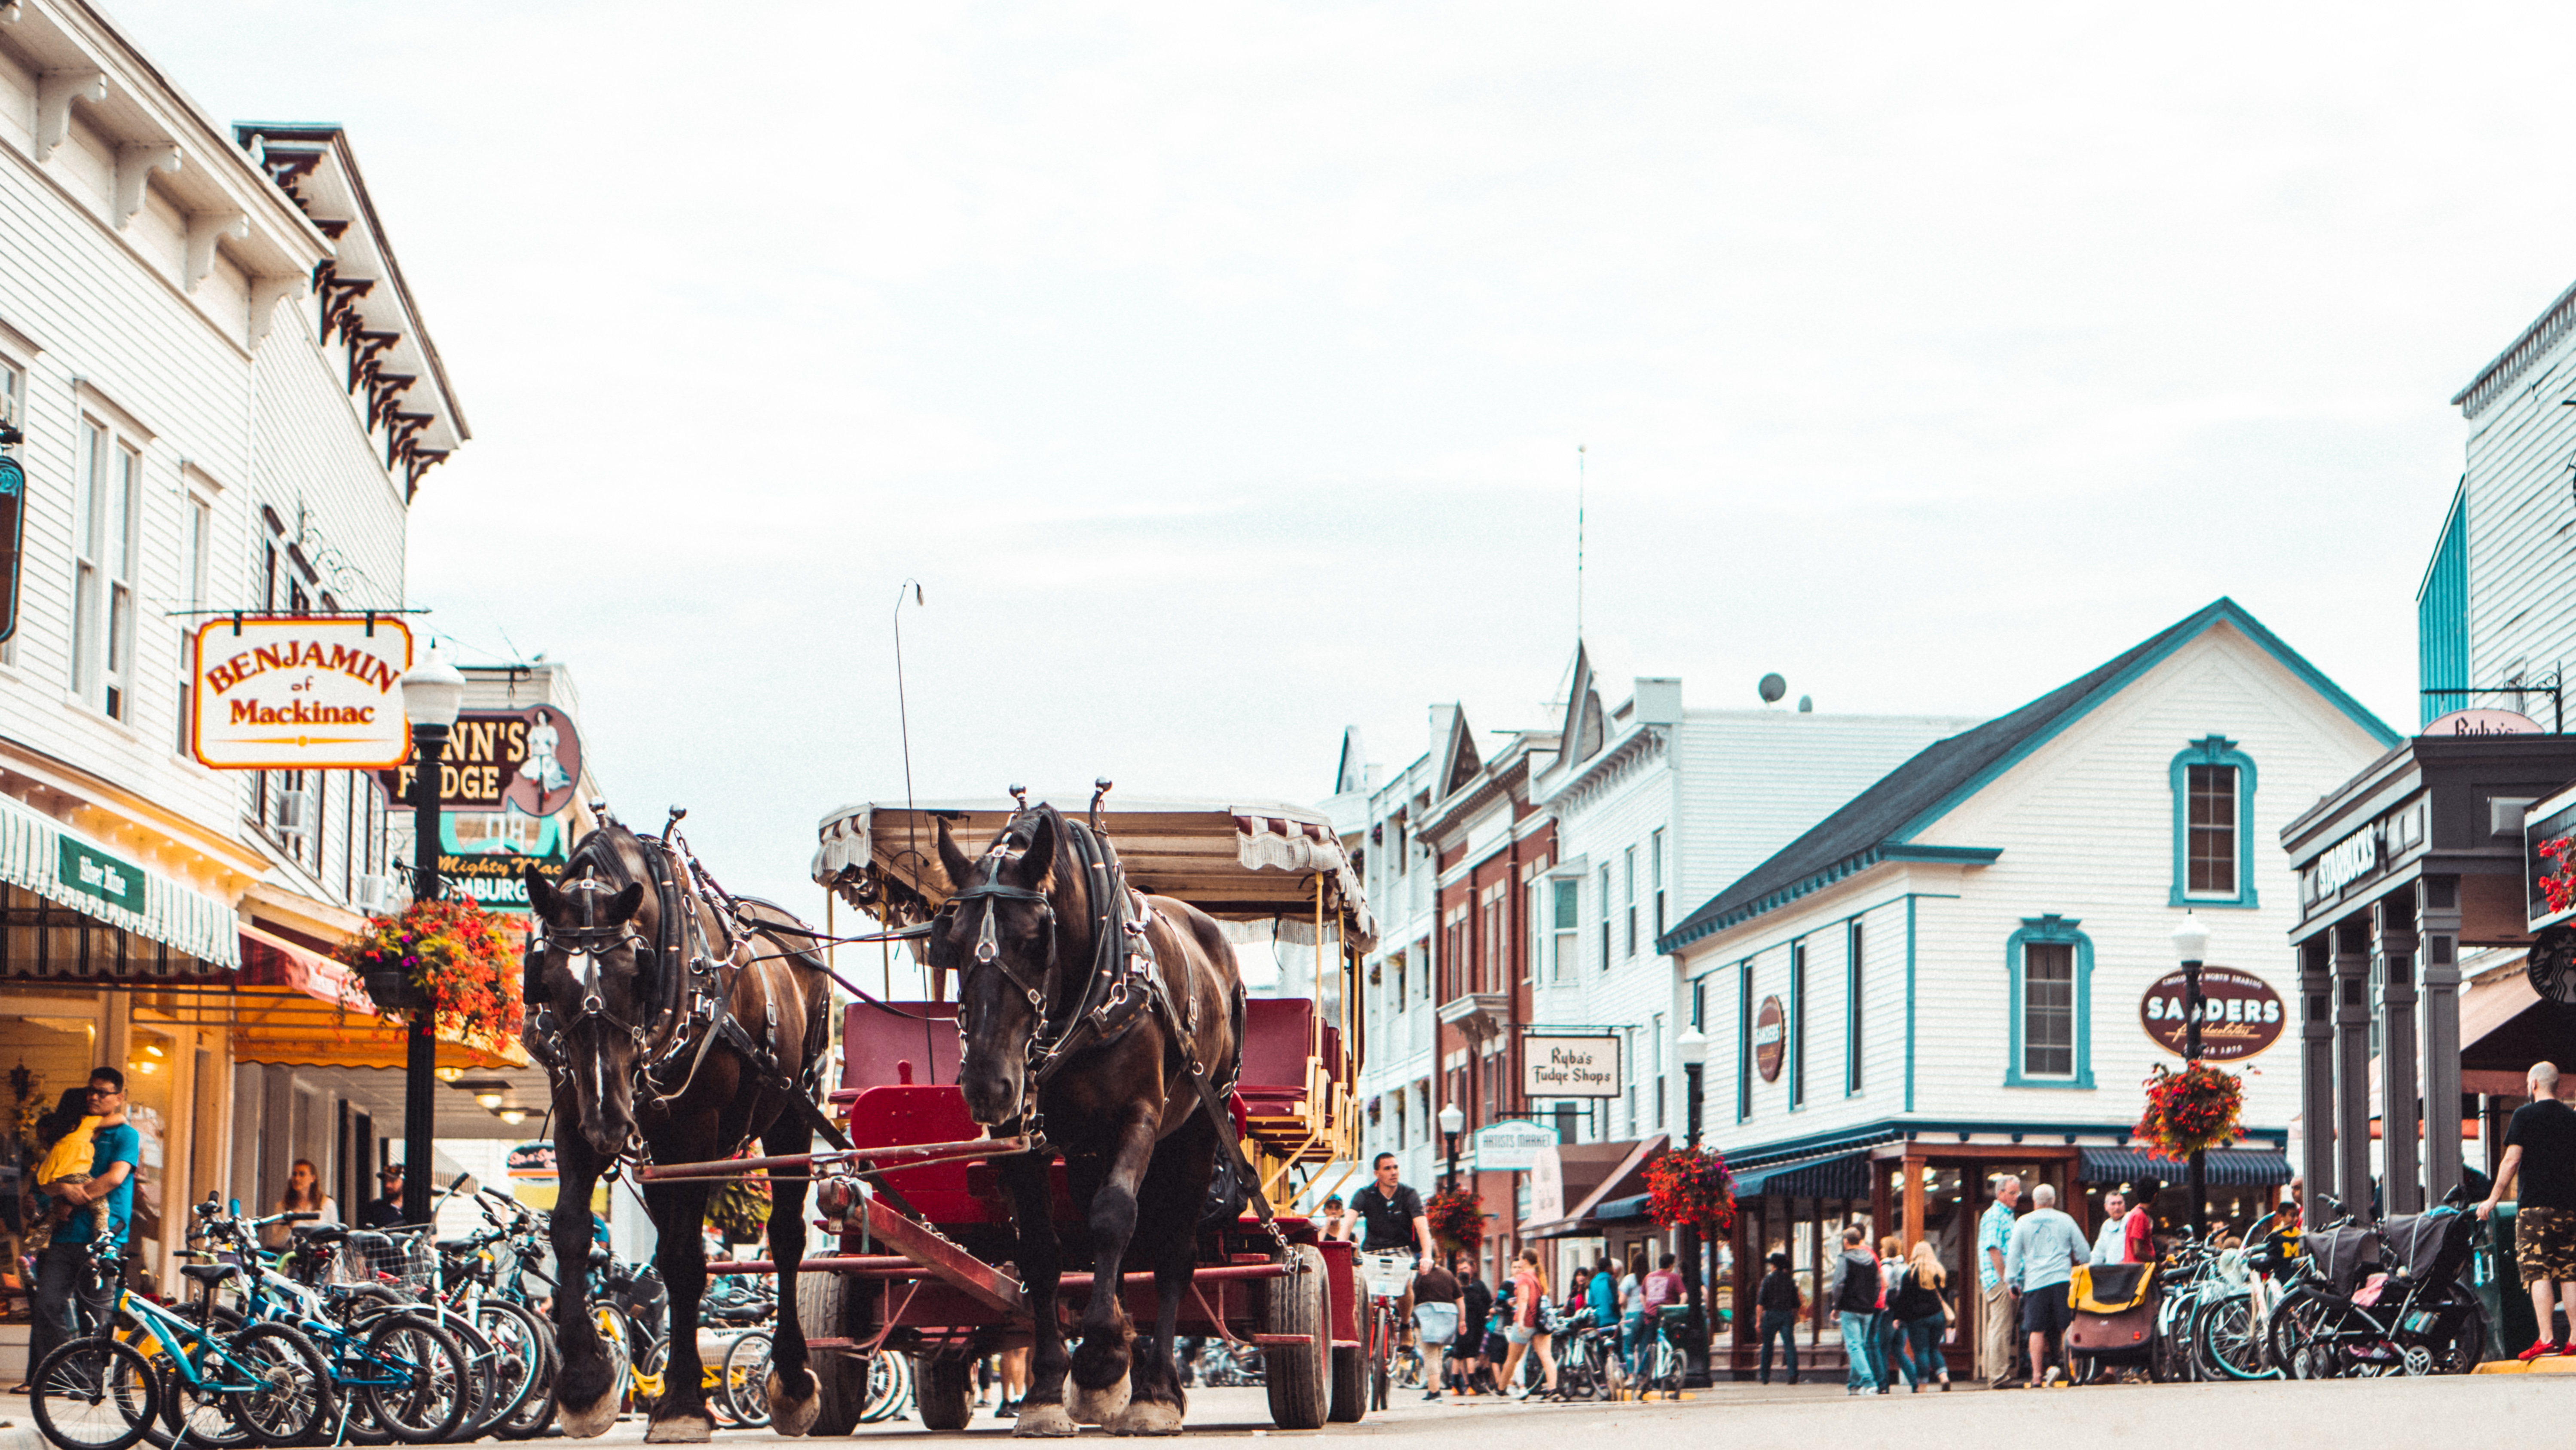 Photo Of A Carriage In The Middle Of The Street